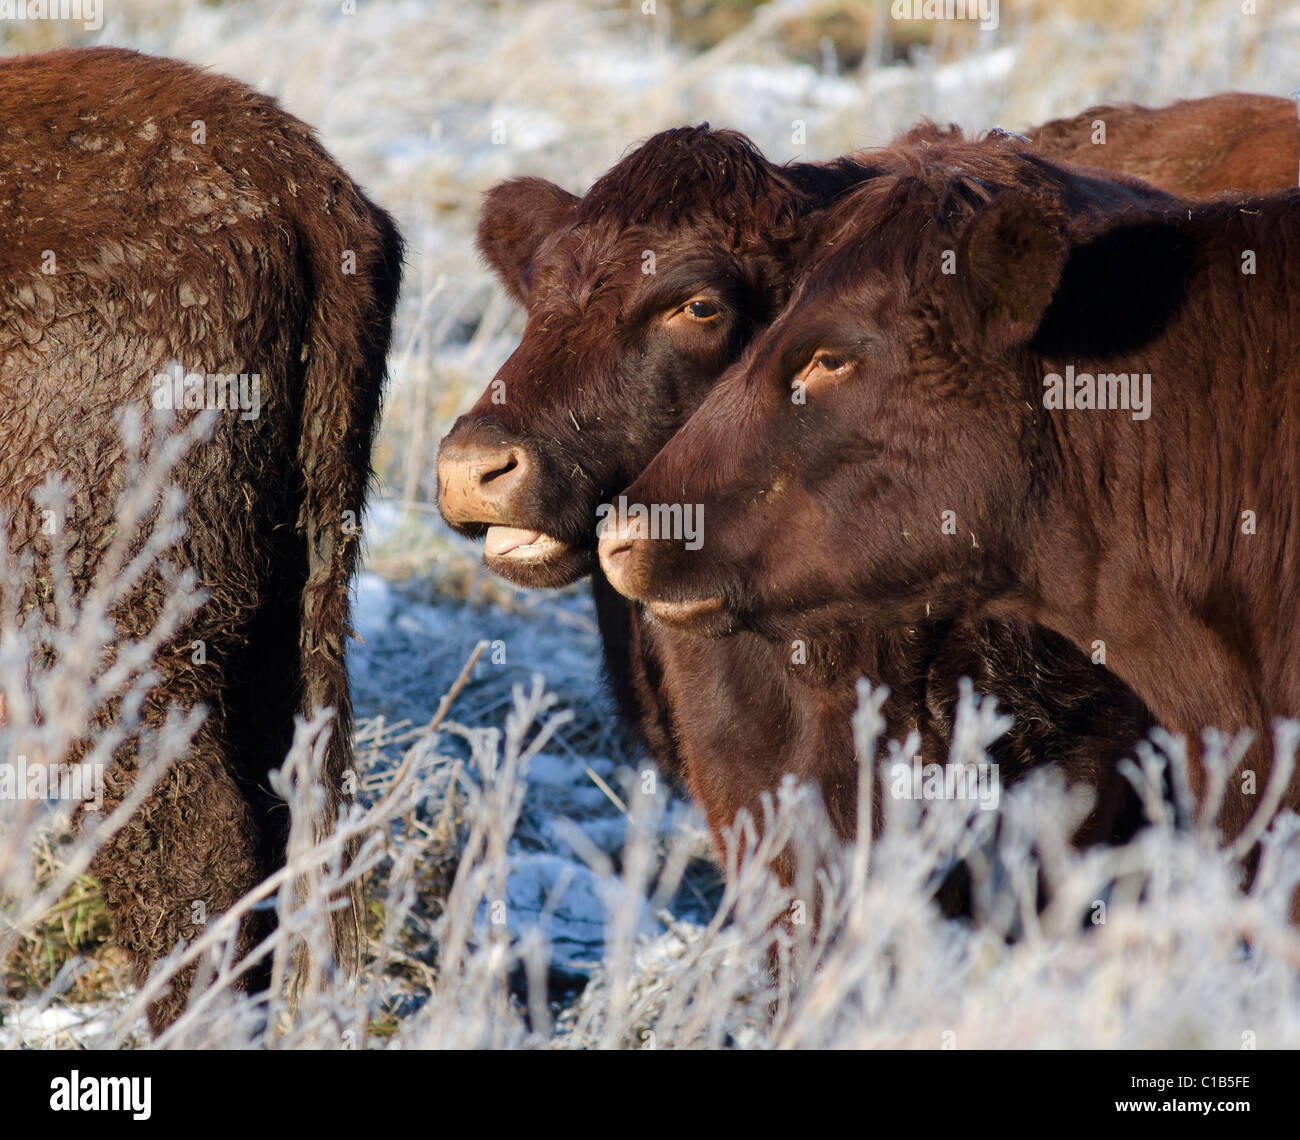 Head shots of two Lincoln red cows together in frosty conditions - Stock Image